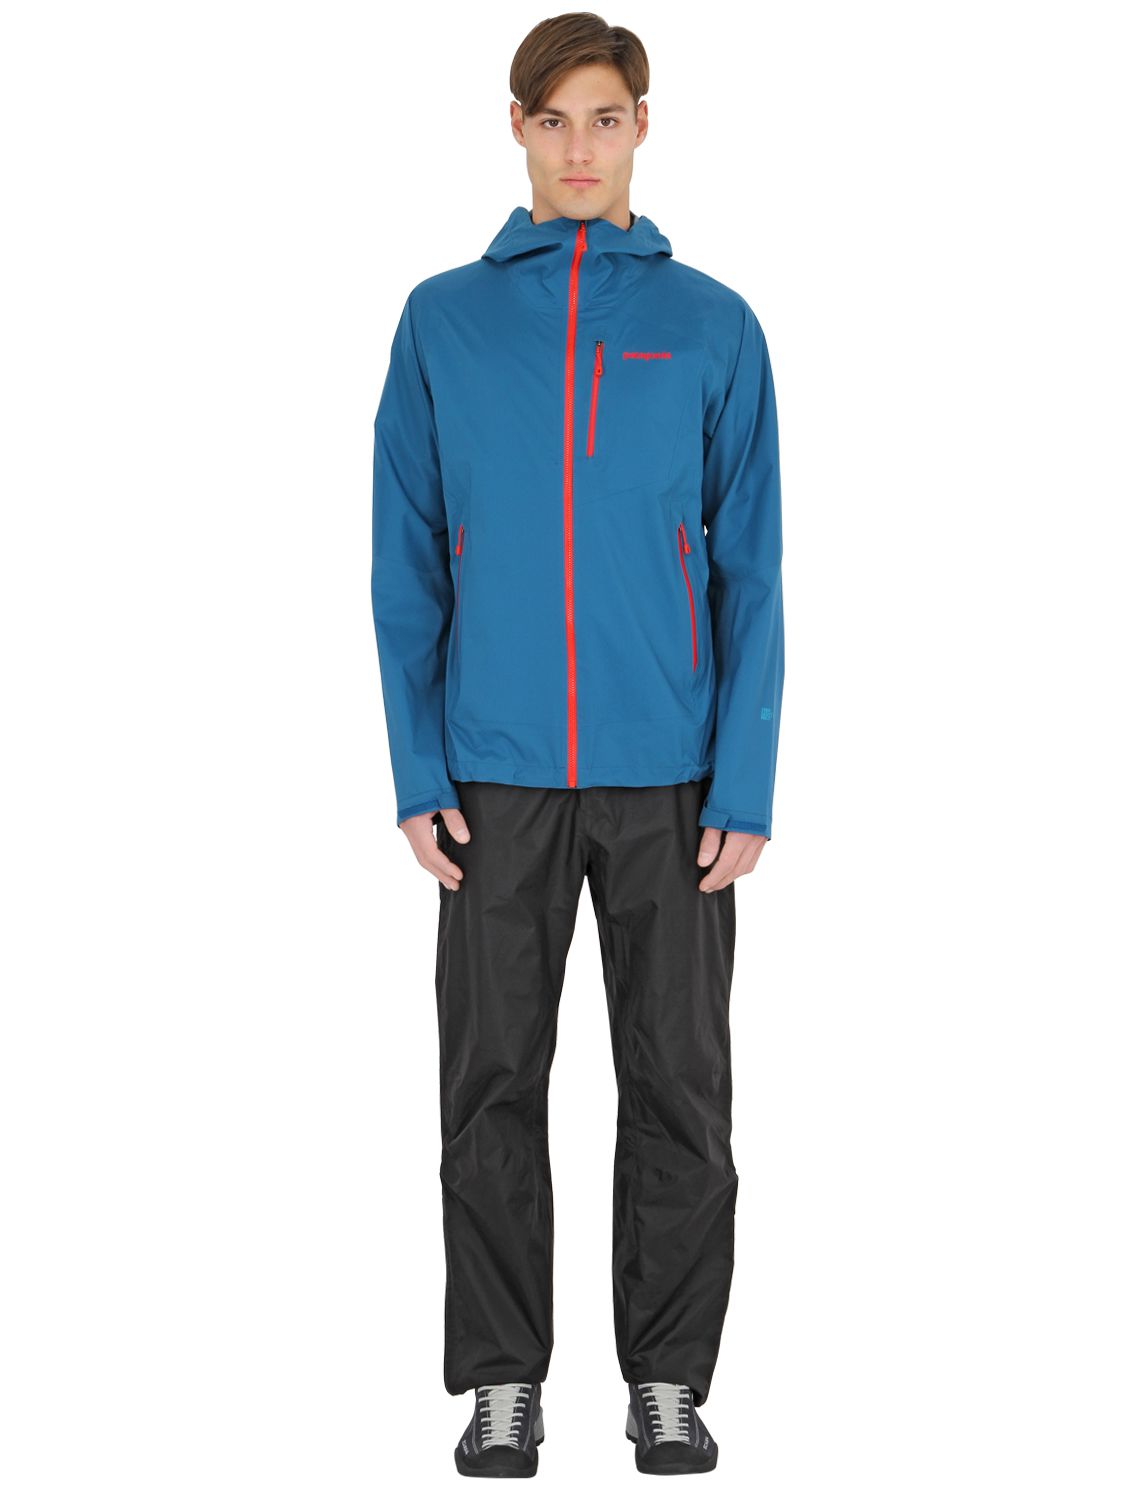 Patagonia Synthetic Stretch Rainshadow Nylon Ripstop Jacket in Blue for Men